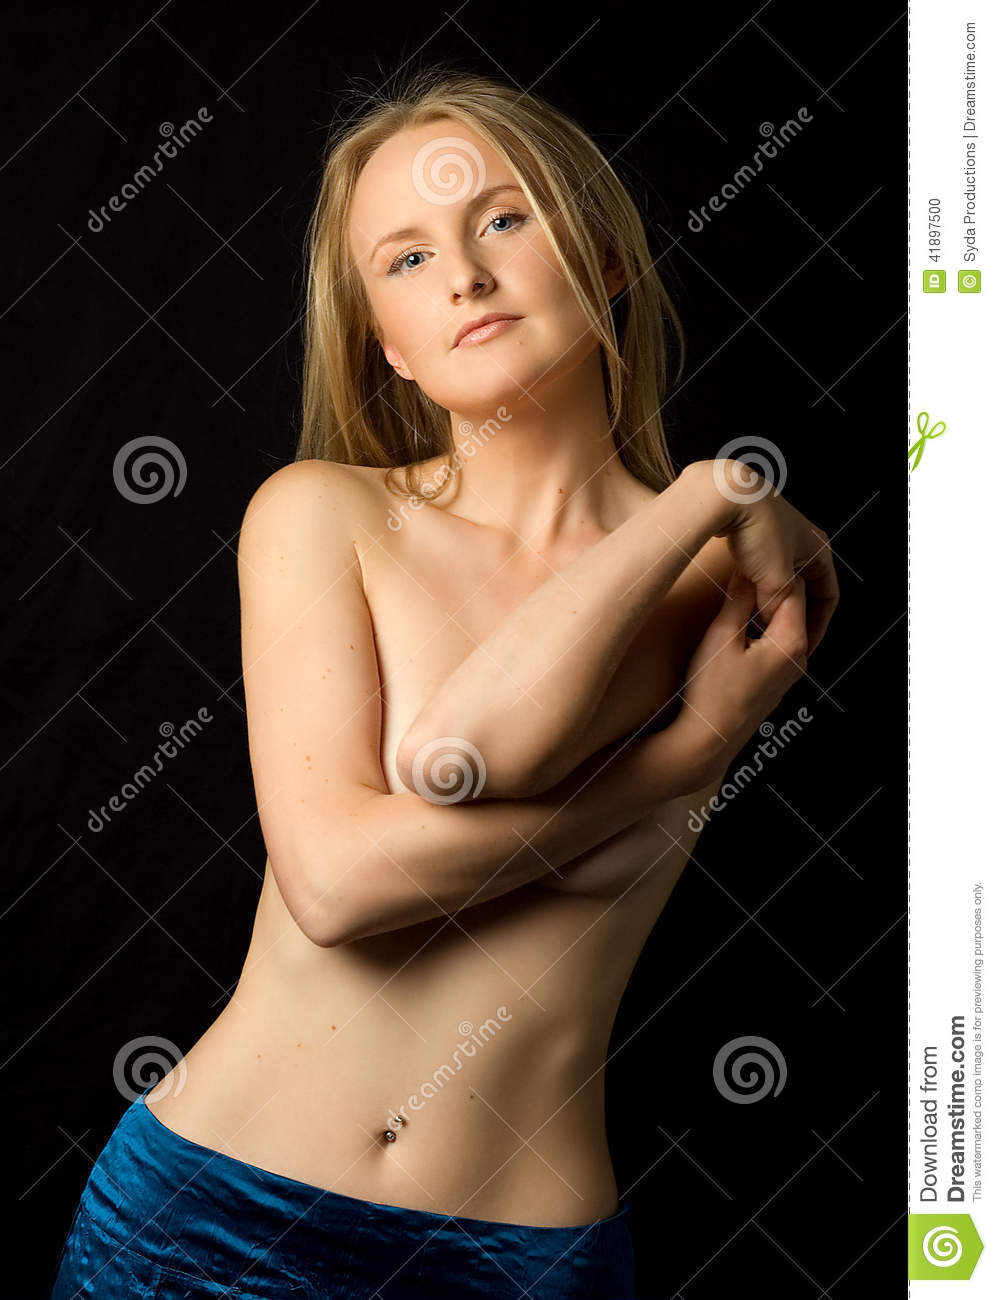 flirt stock photo. image of firm, background, body, button - 41897500